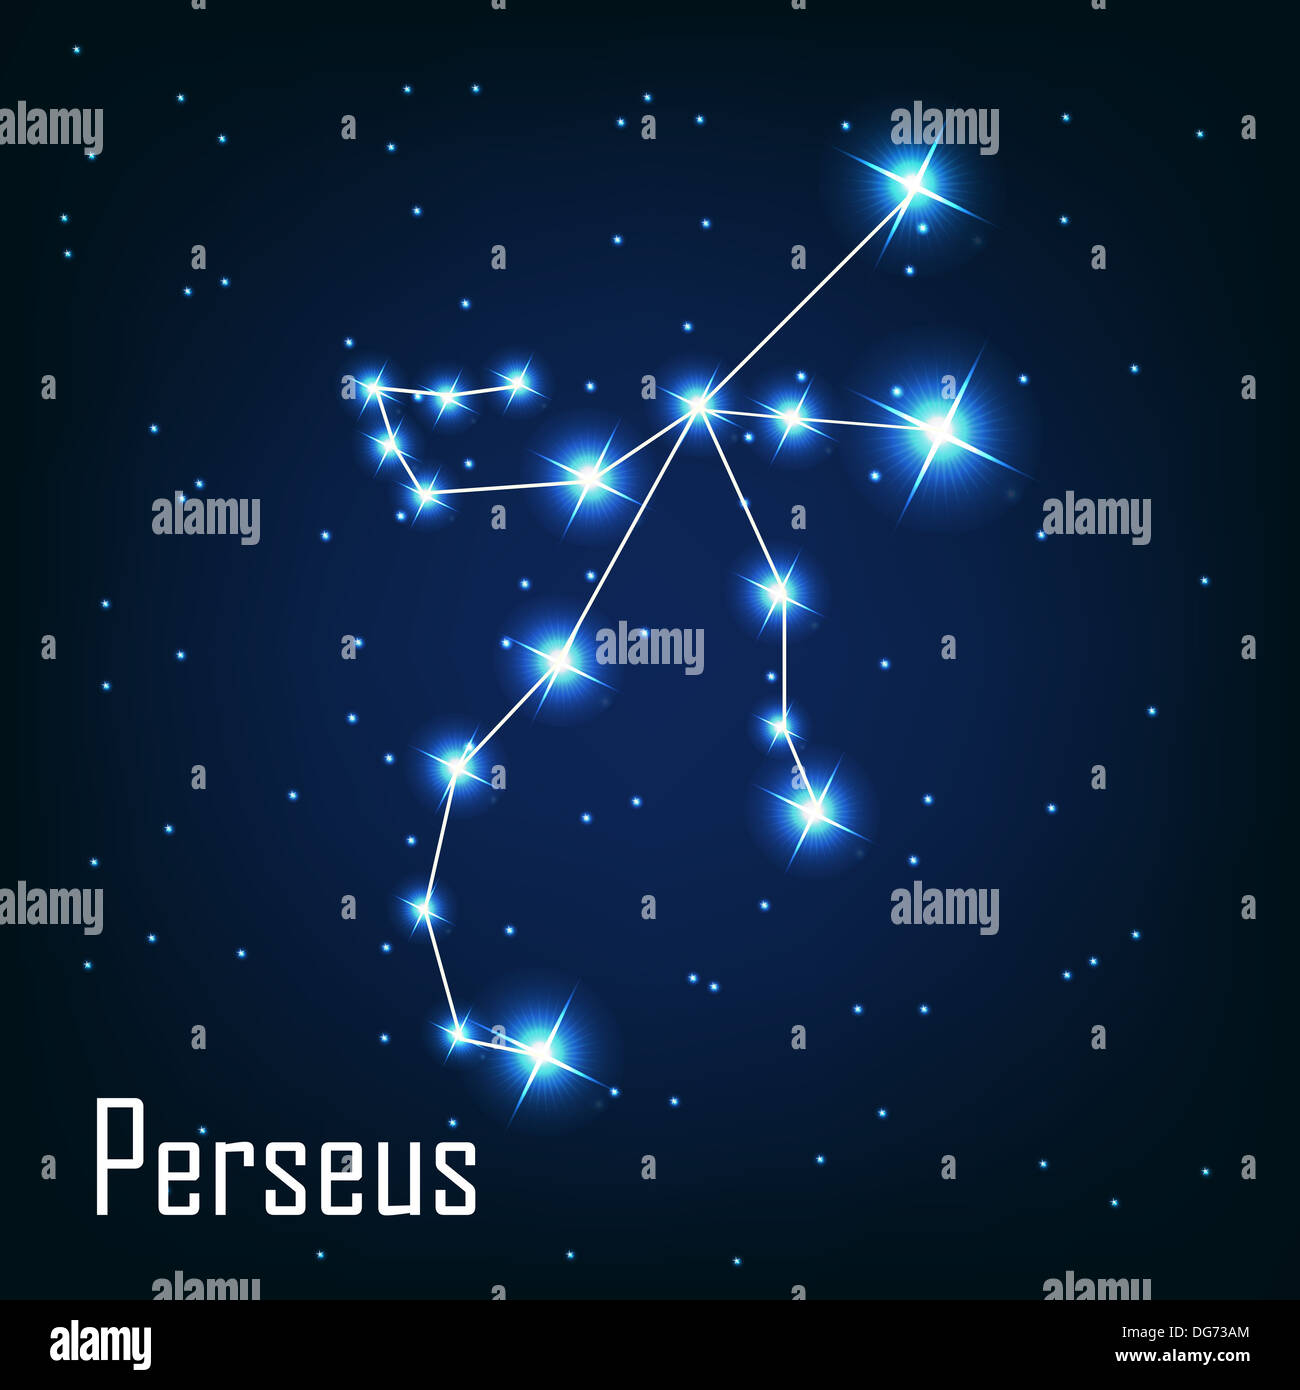 The constellation ' Perseus' star in the night sky. Vector illus - Stock Image